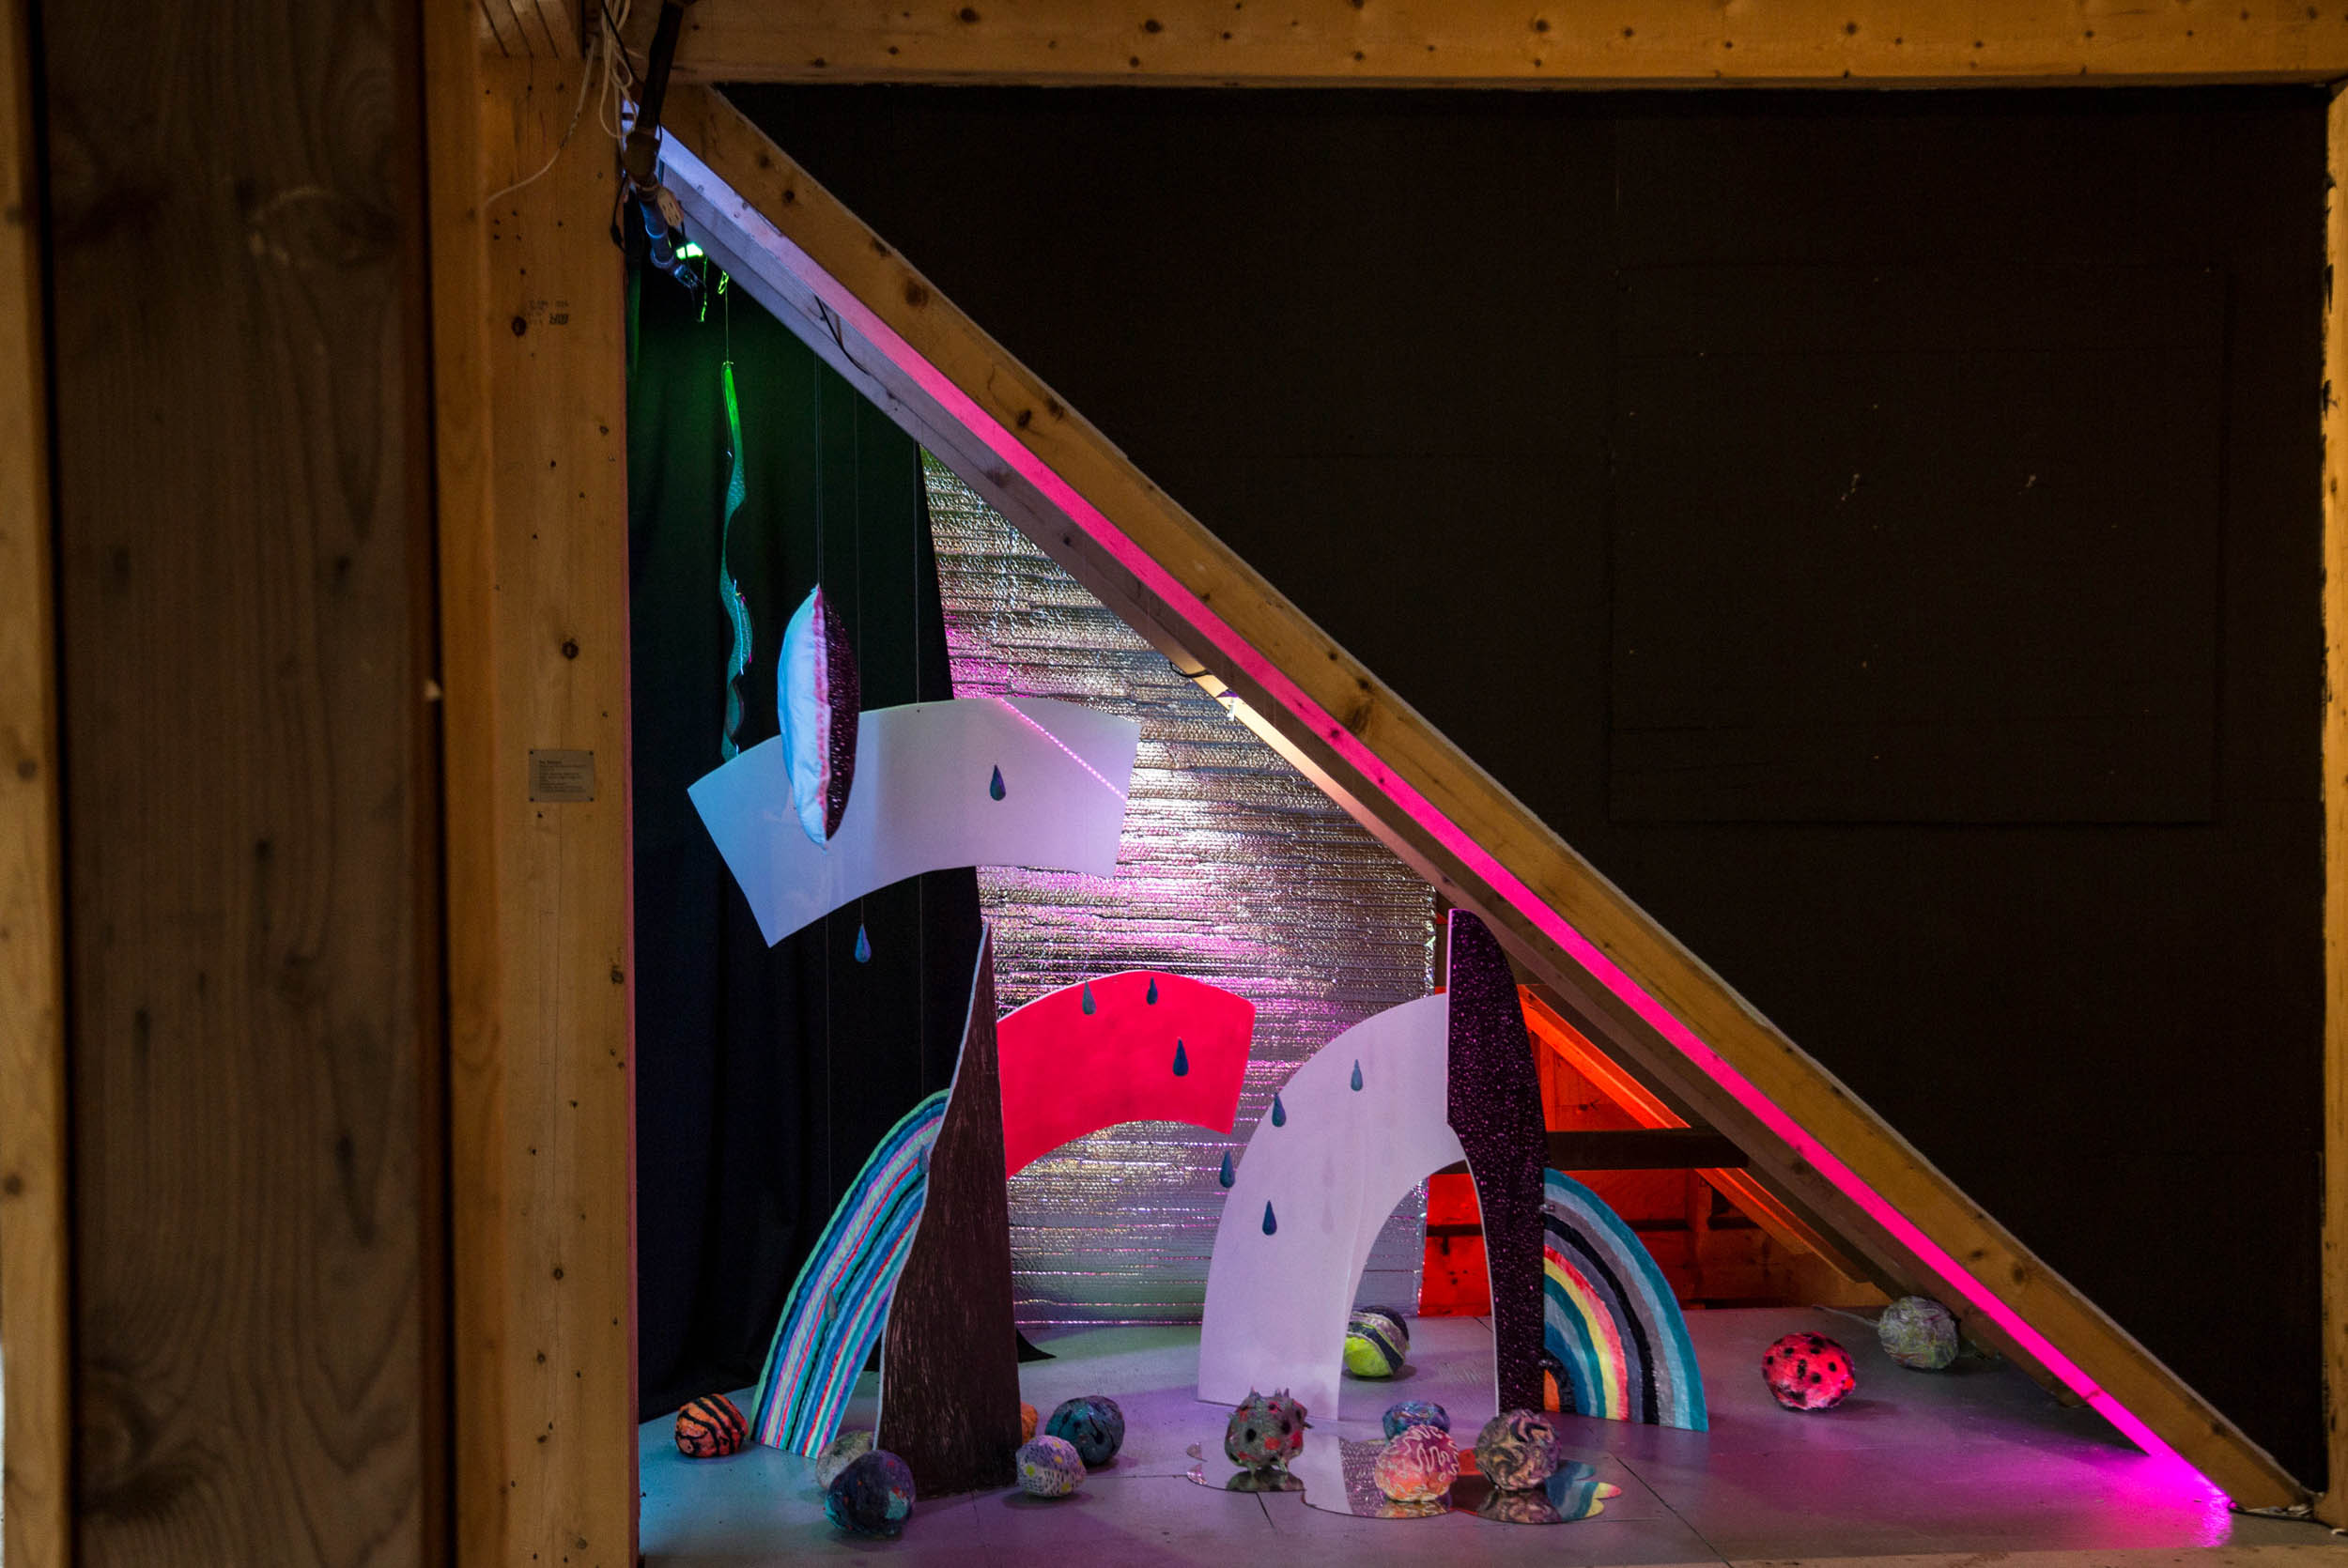 wassaic-project-exhibition-vagabond-time-killers-2017-07-01-02-13-34.jpg